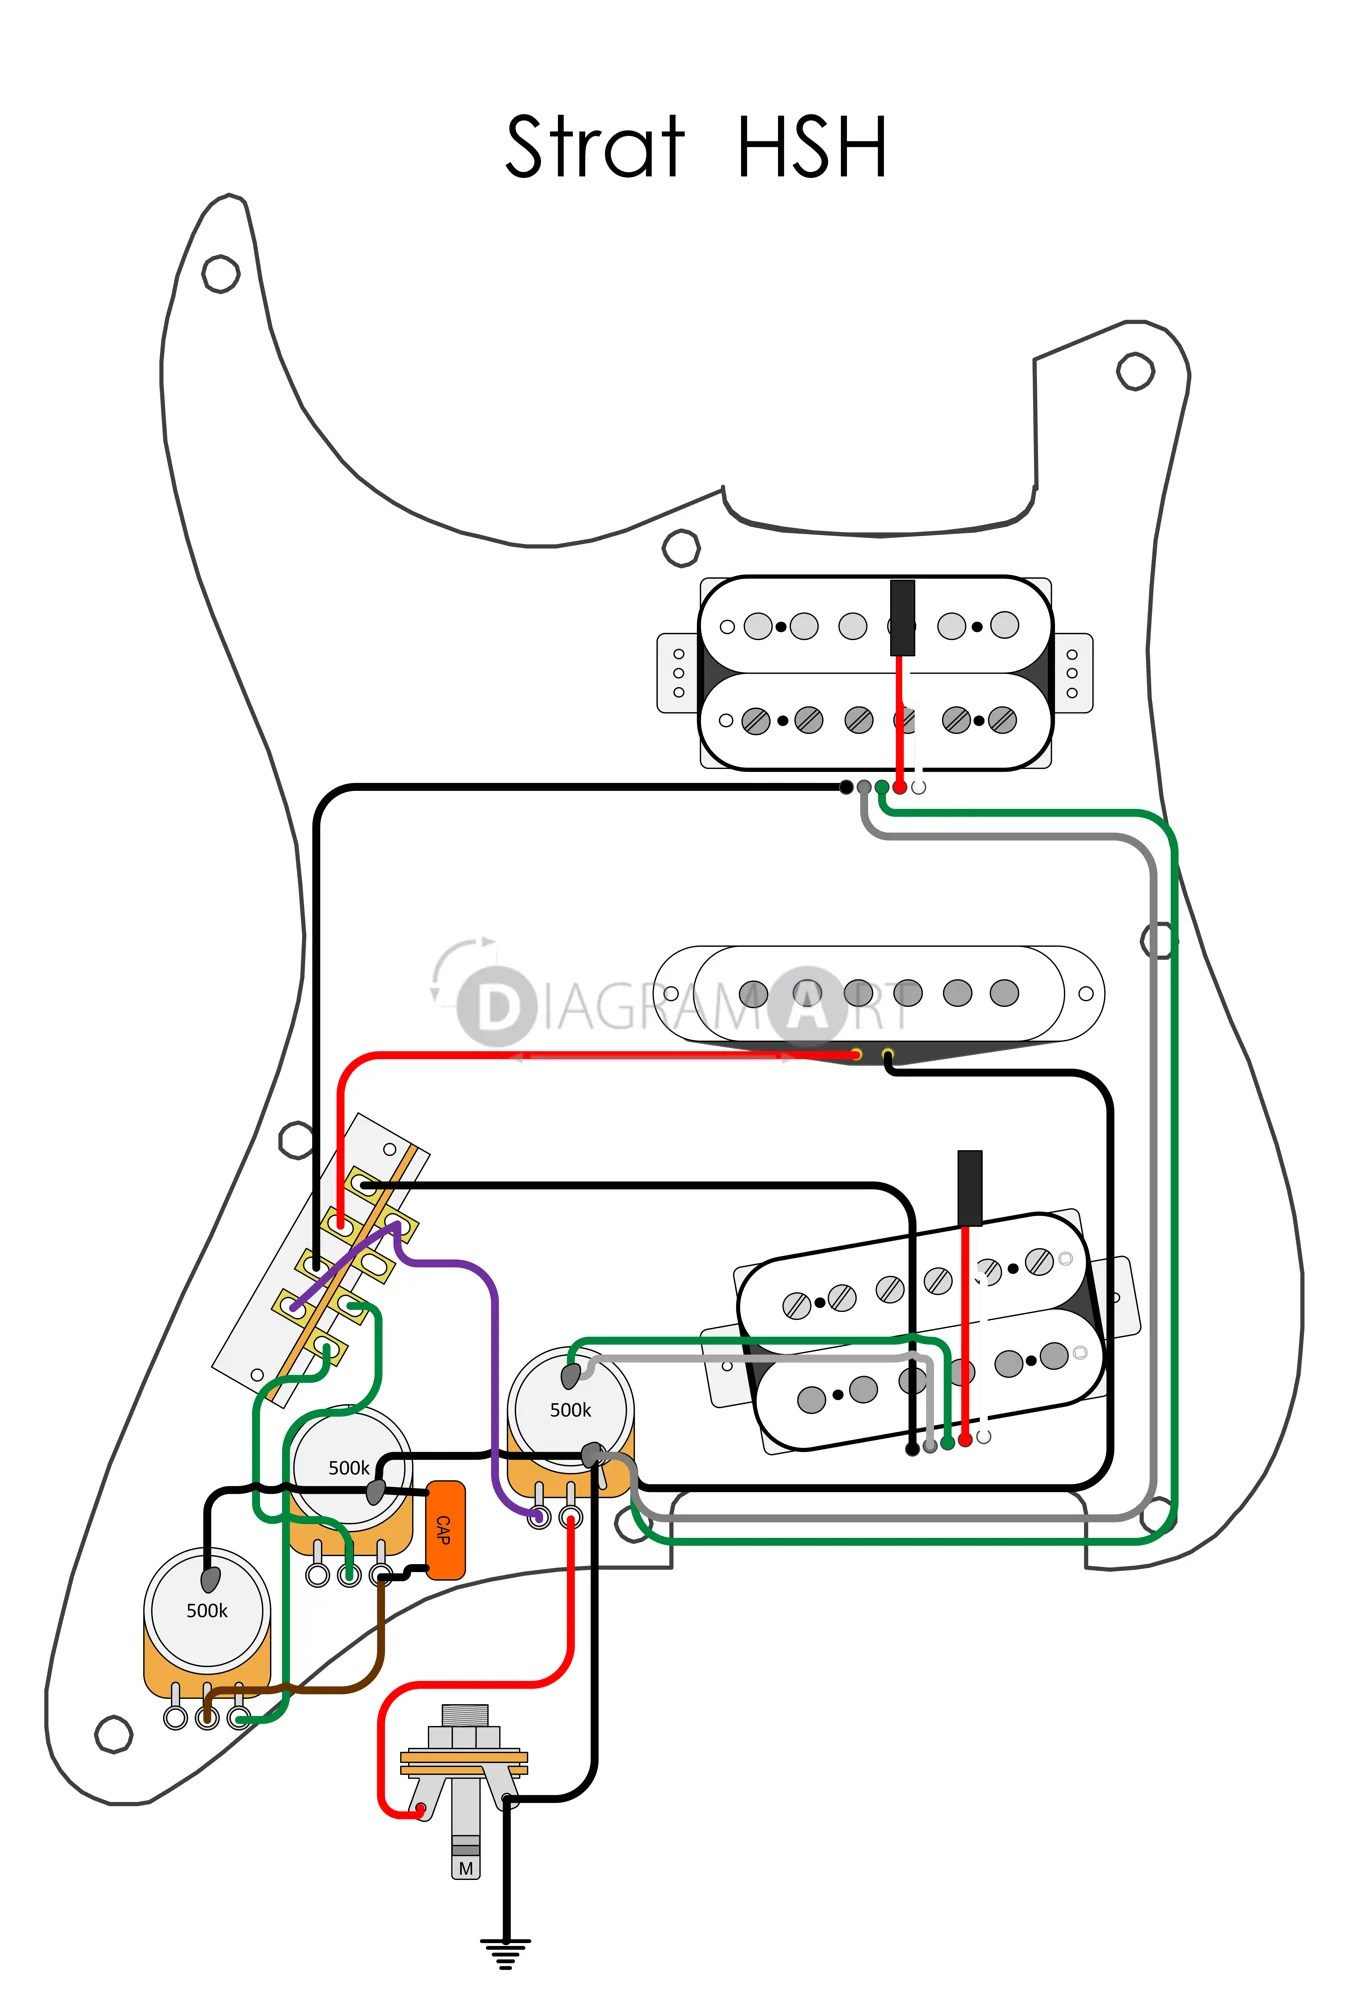 hight resolution of free download guitar wiring diagrams diagram jem simple wiring schema car air horn wiring diagram guitar wiring diagram hsh